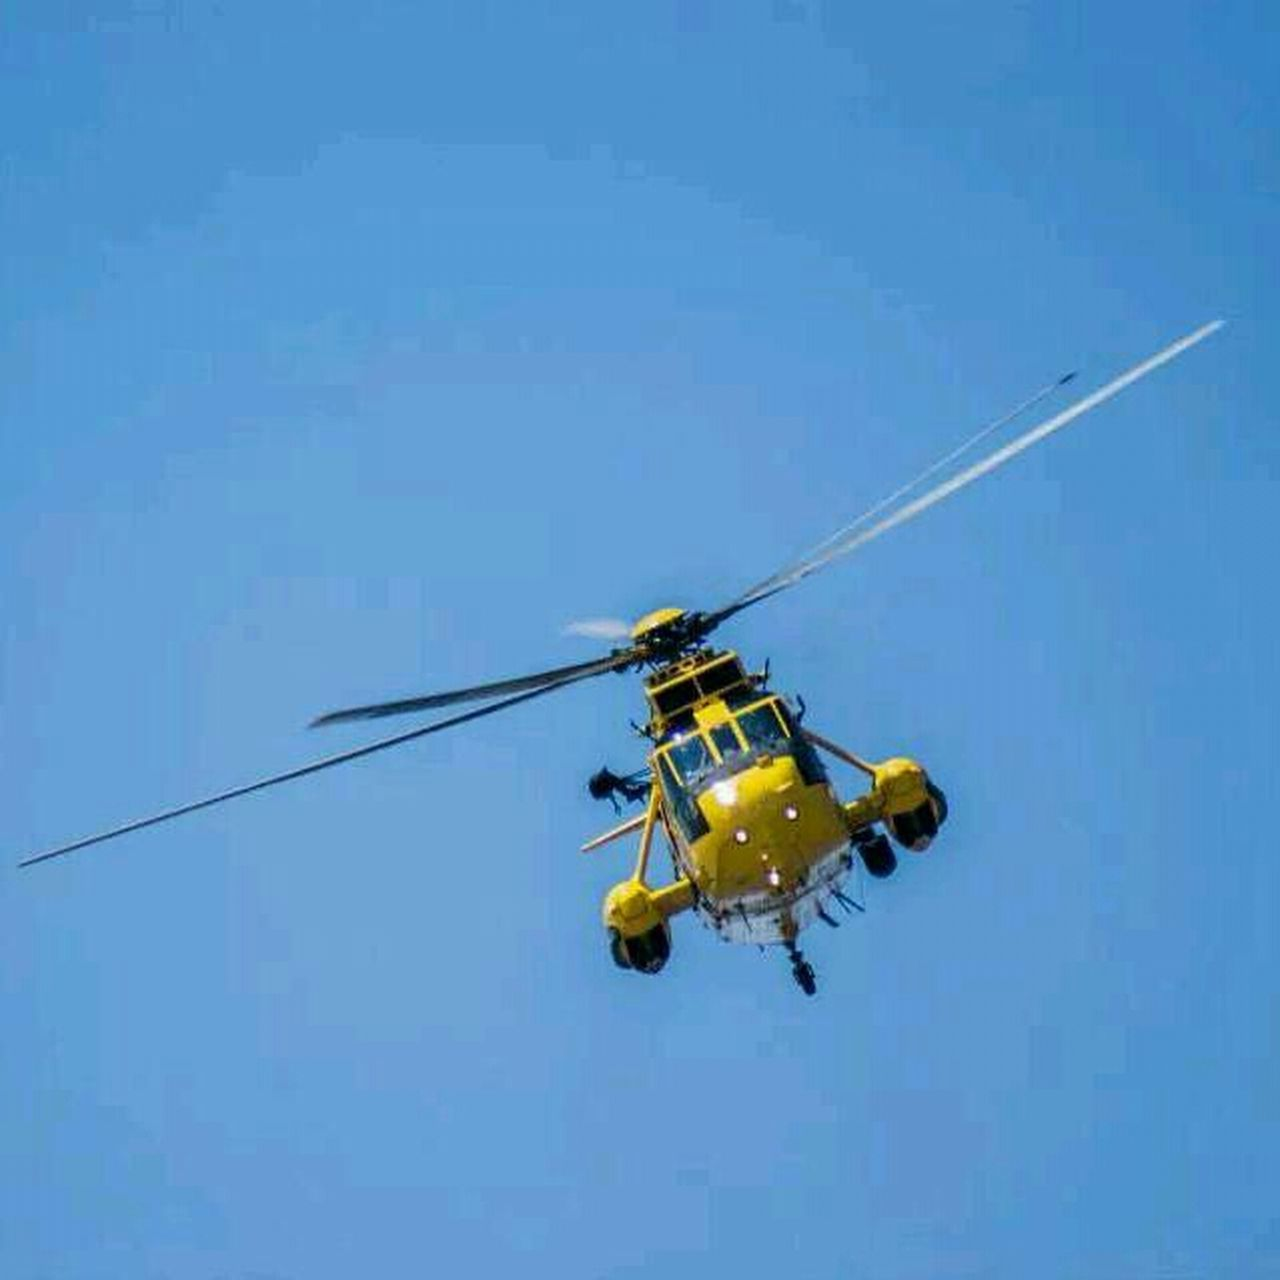 Another shot from the air show. Somerset Royalairforce Air Show Helicopter